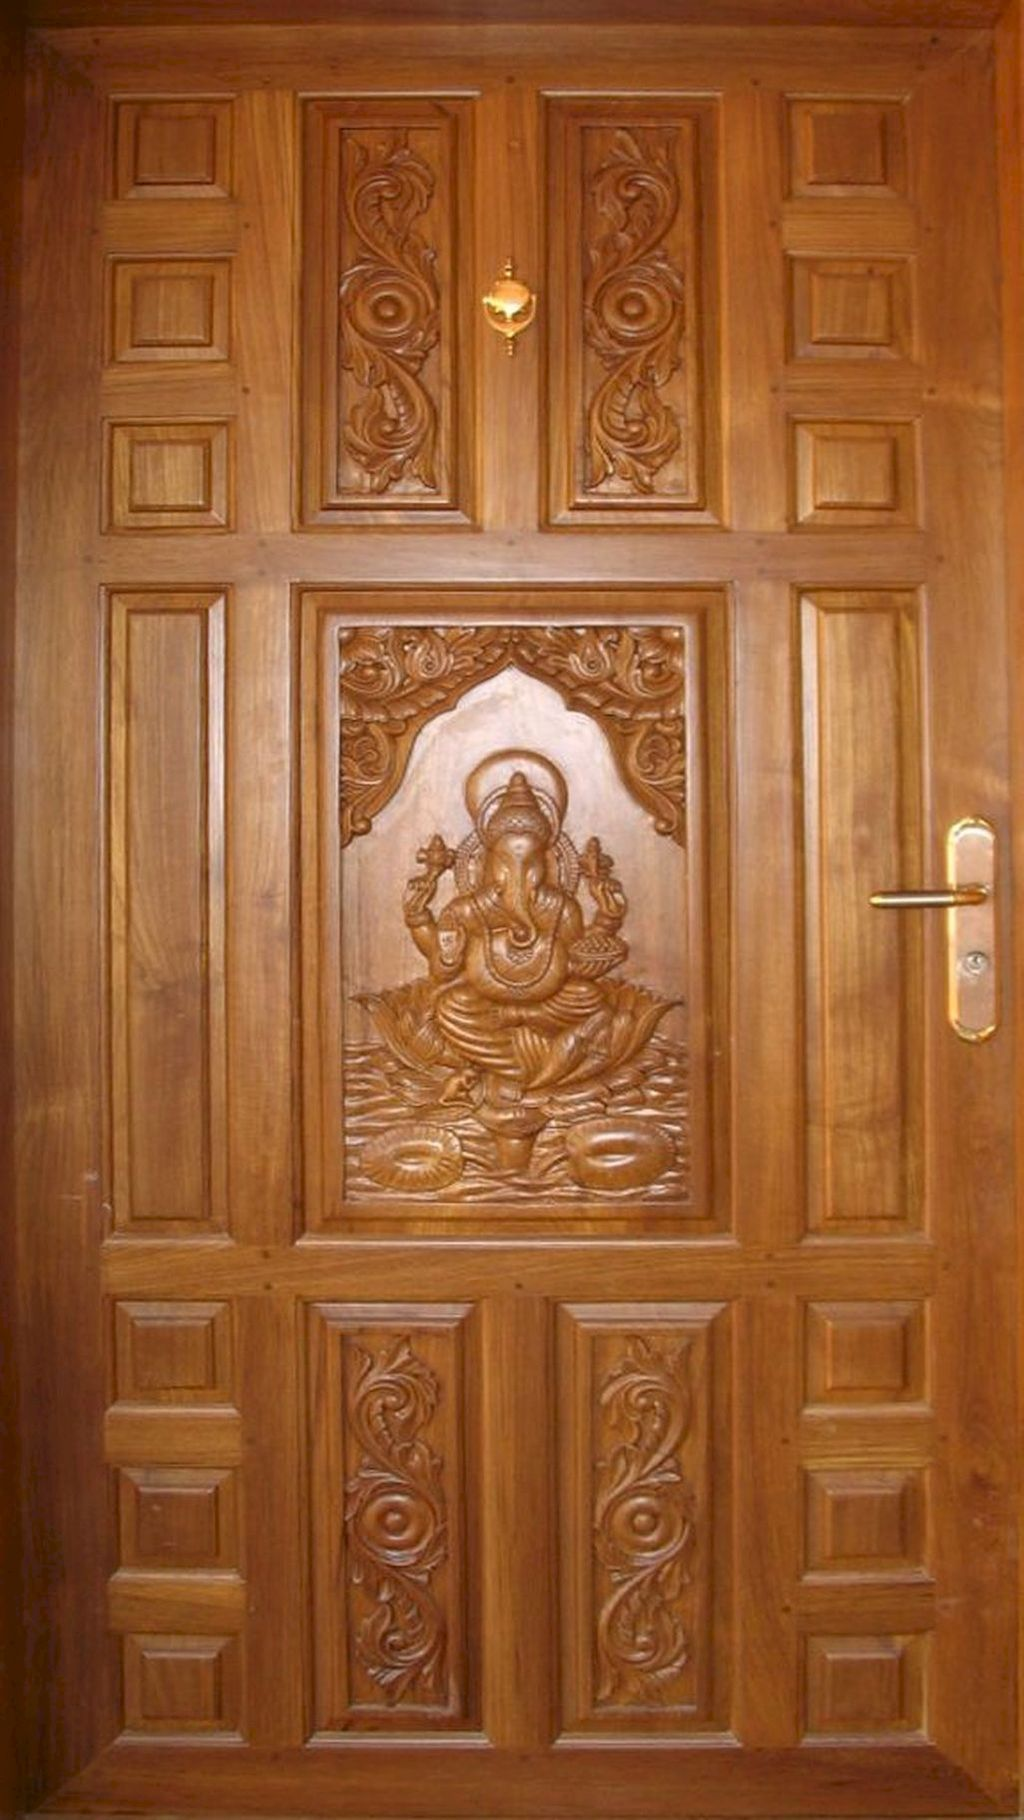 Luxurious 10 Ideas For A Special Entrance To Your Home Https Homemidi Com 2019 04 04 10 Front Door Design Wood Wooden Door Design Wooden Main Door Design